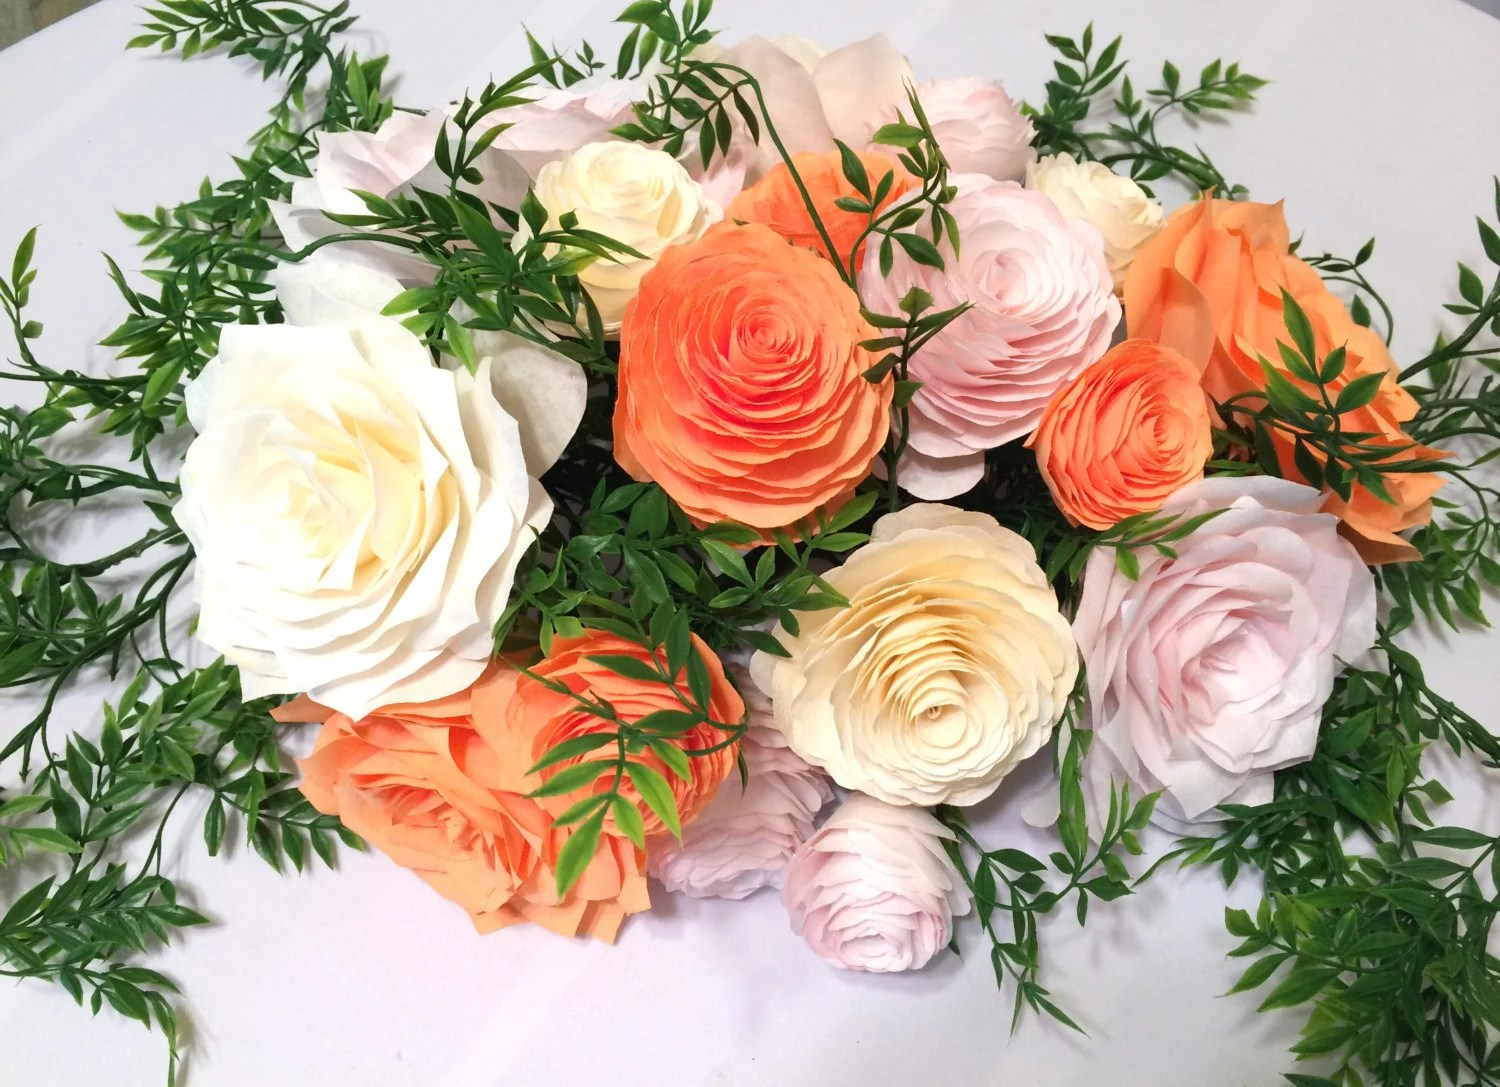 Items Similar To Floral Garland In Blush, Ivory And Peach